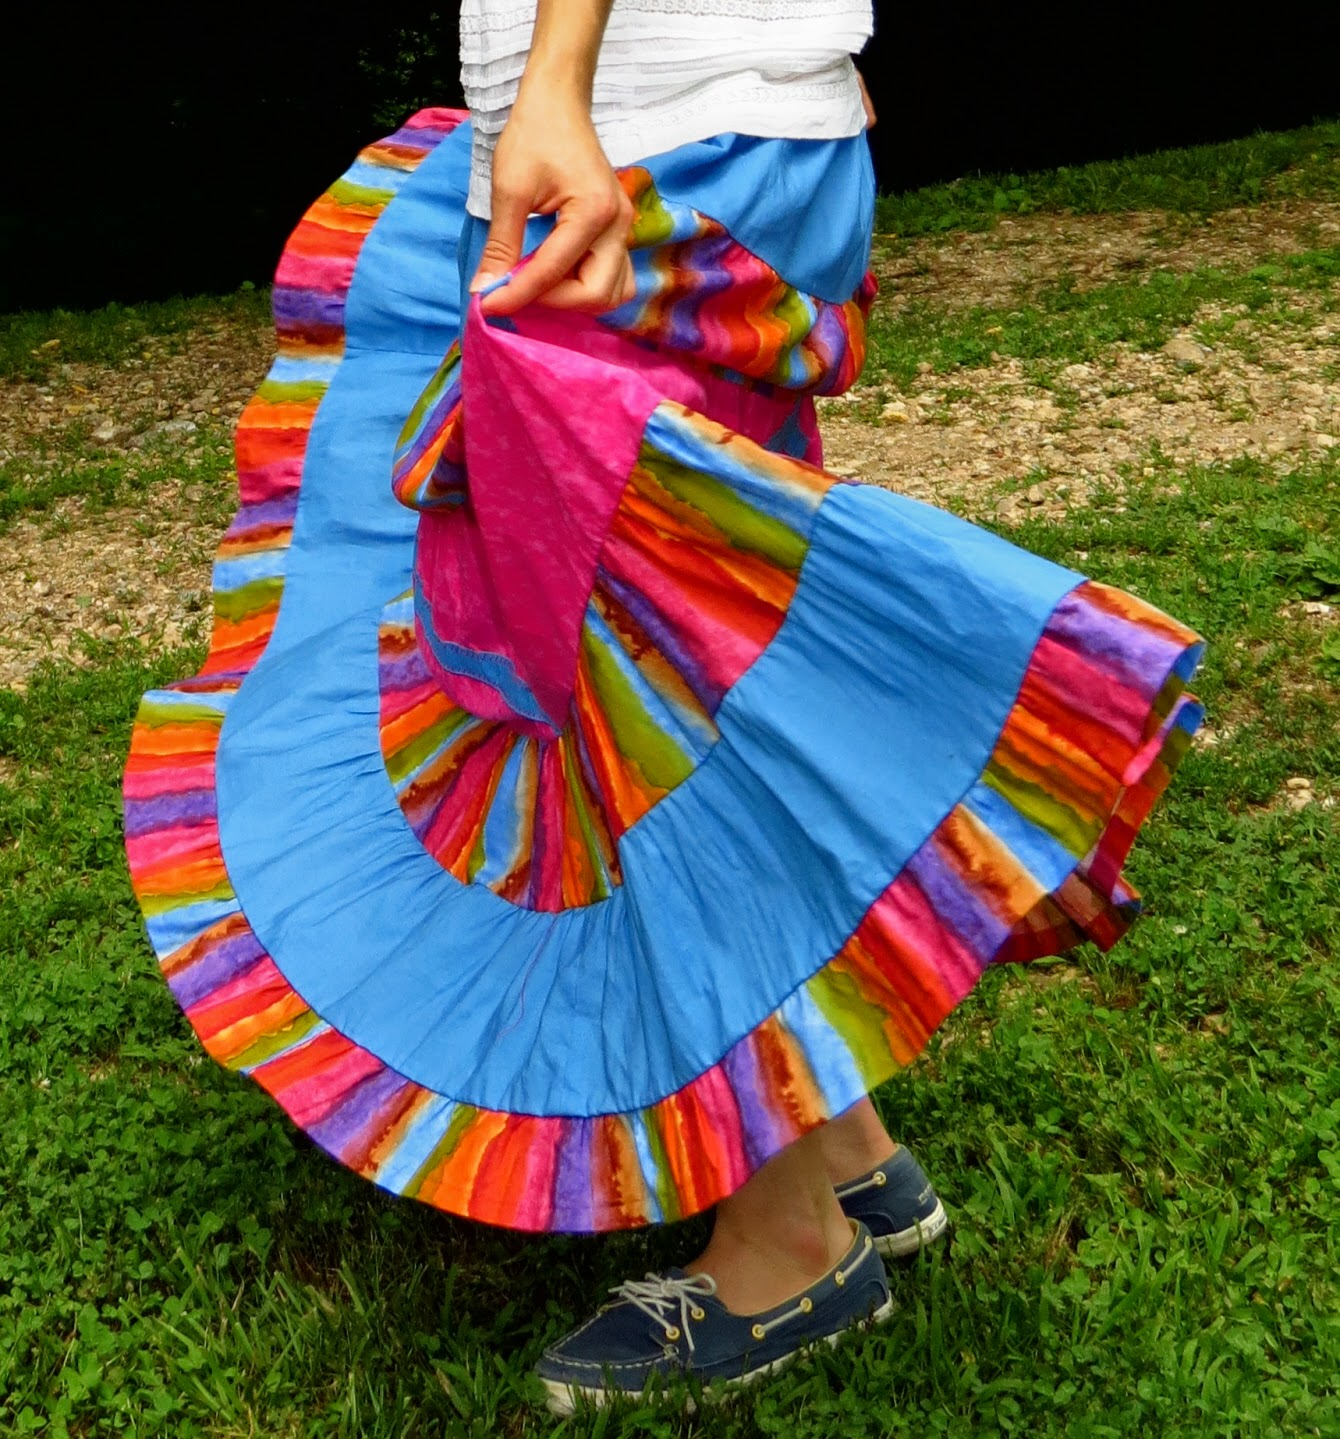 http://hannahsheadcoverings.com/shop/rainbow-tier-skirt/